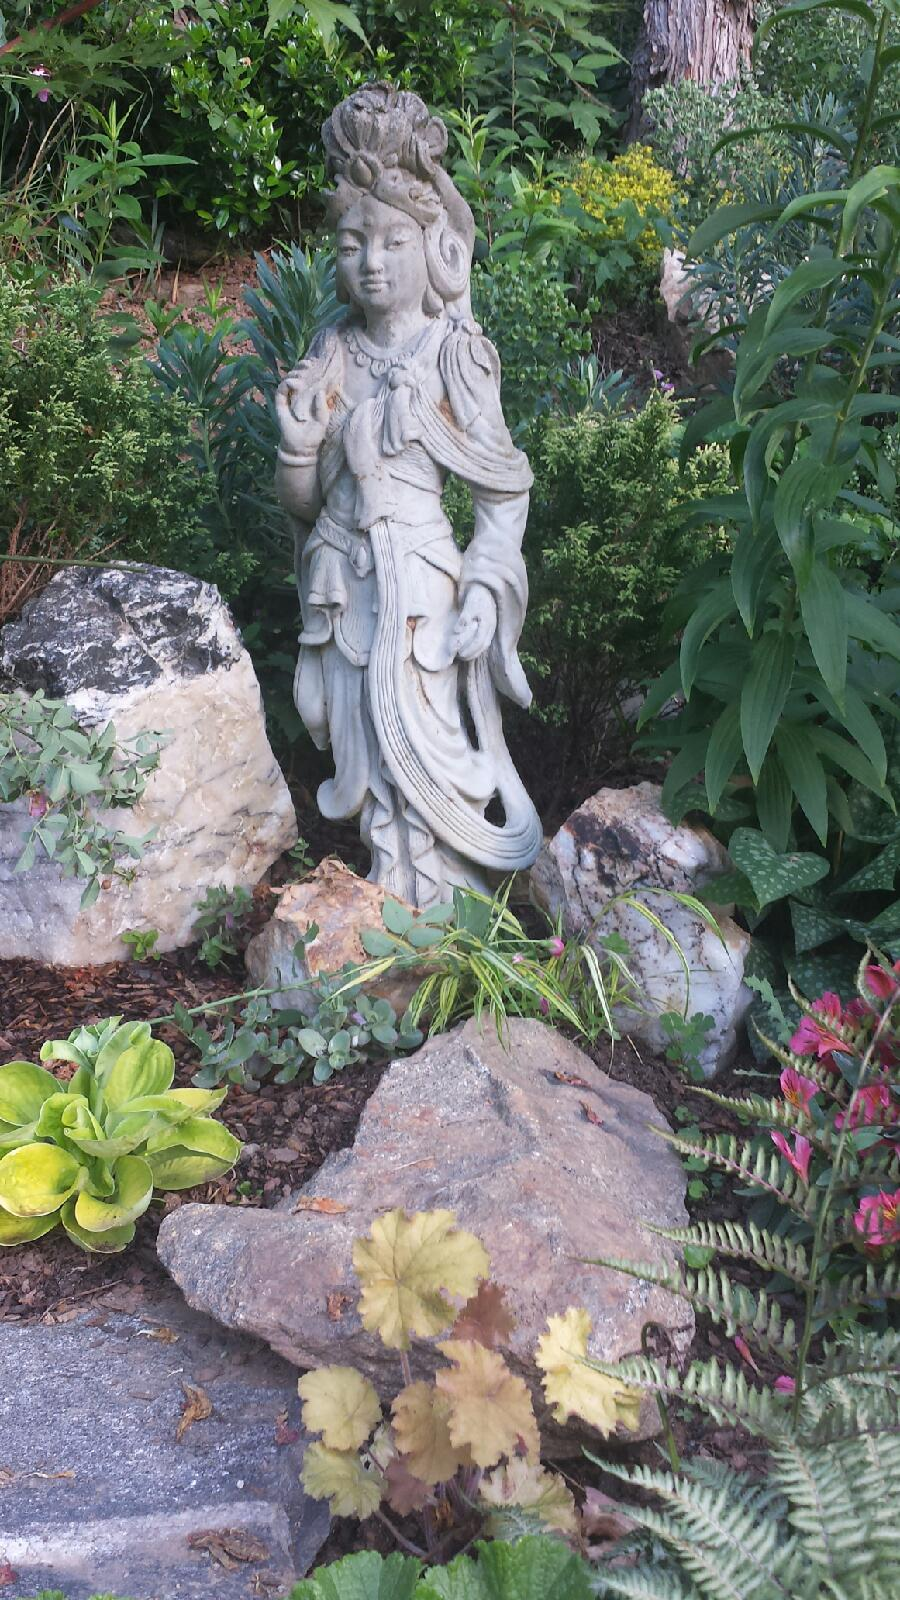 Cynthia added large stones and art work to balance out her love of flowers, and anchor the garden. An easy fix for areas in our gardens that lack structure.